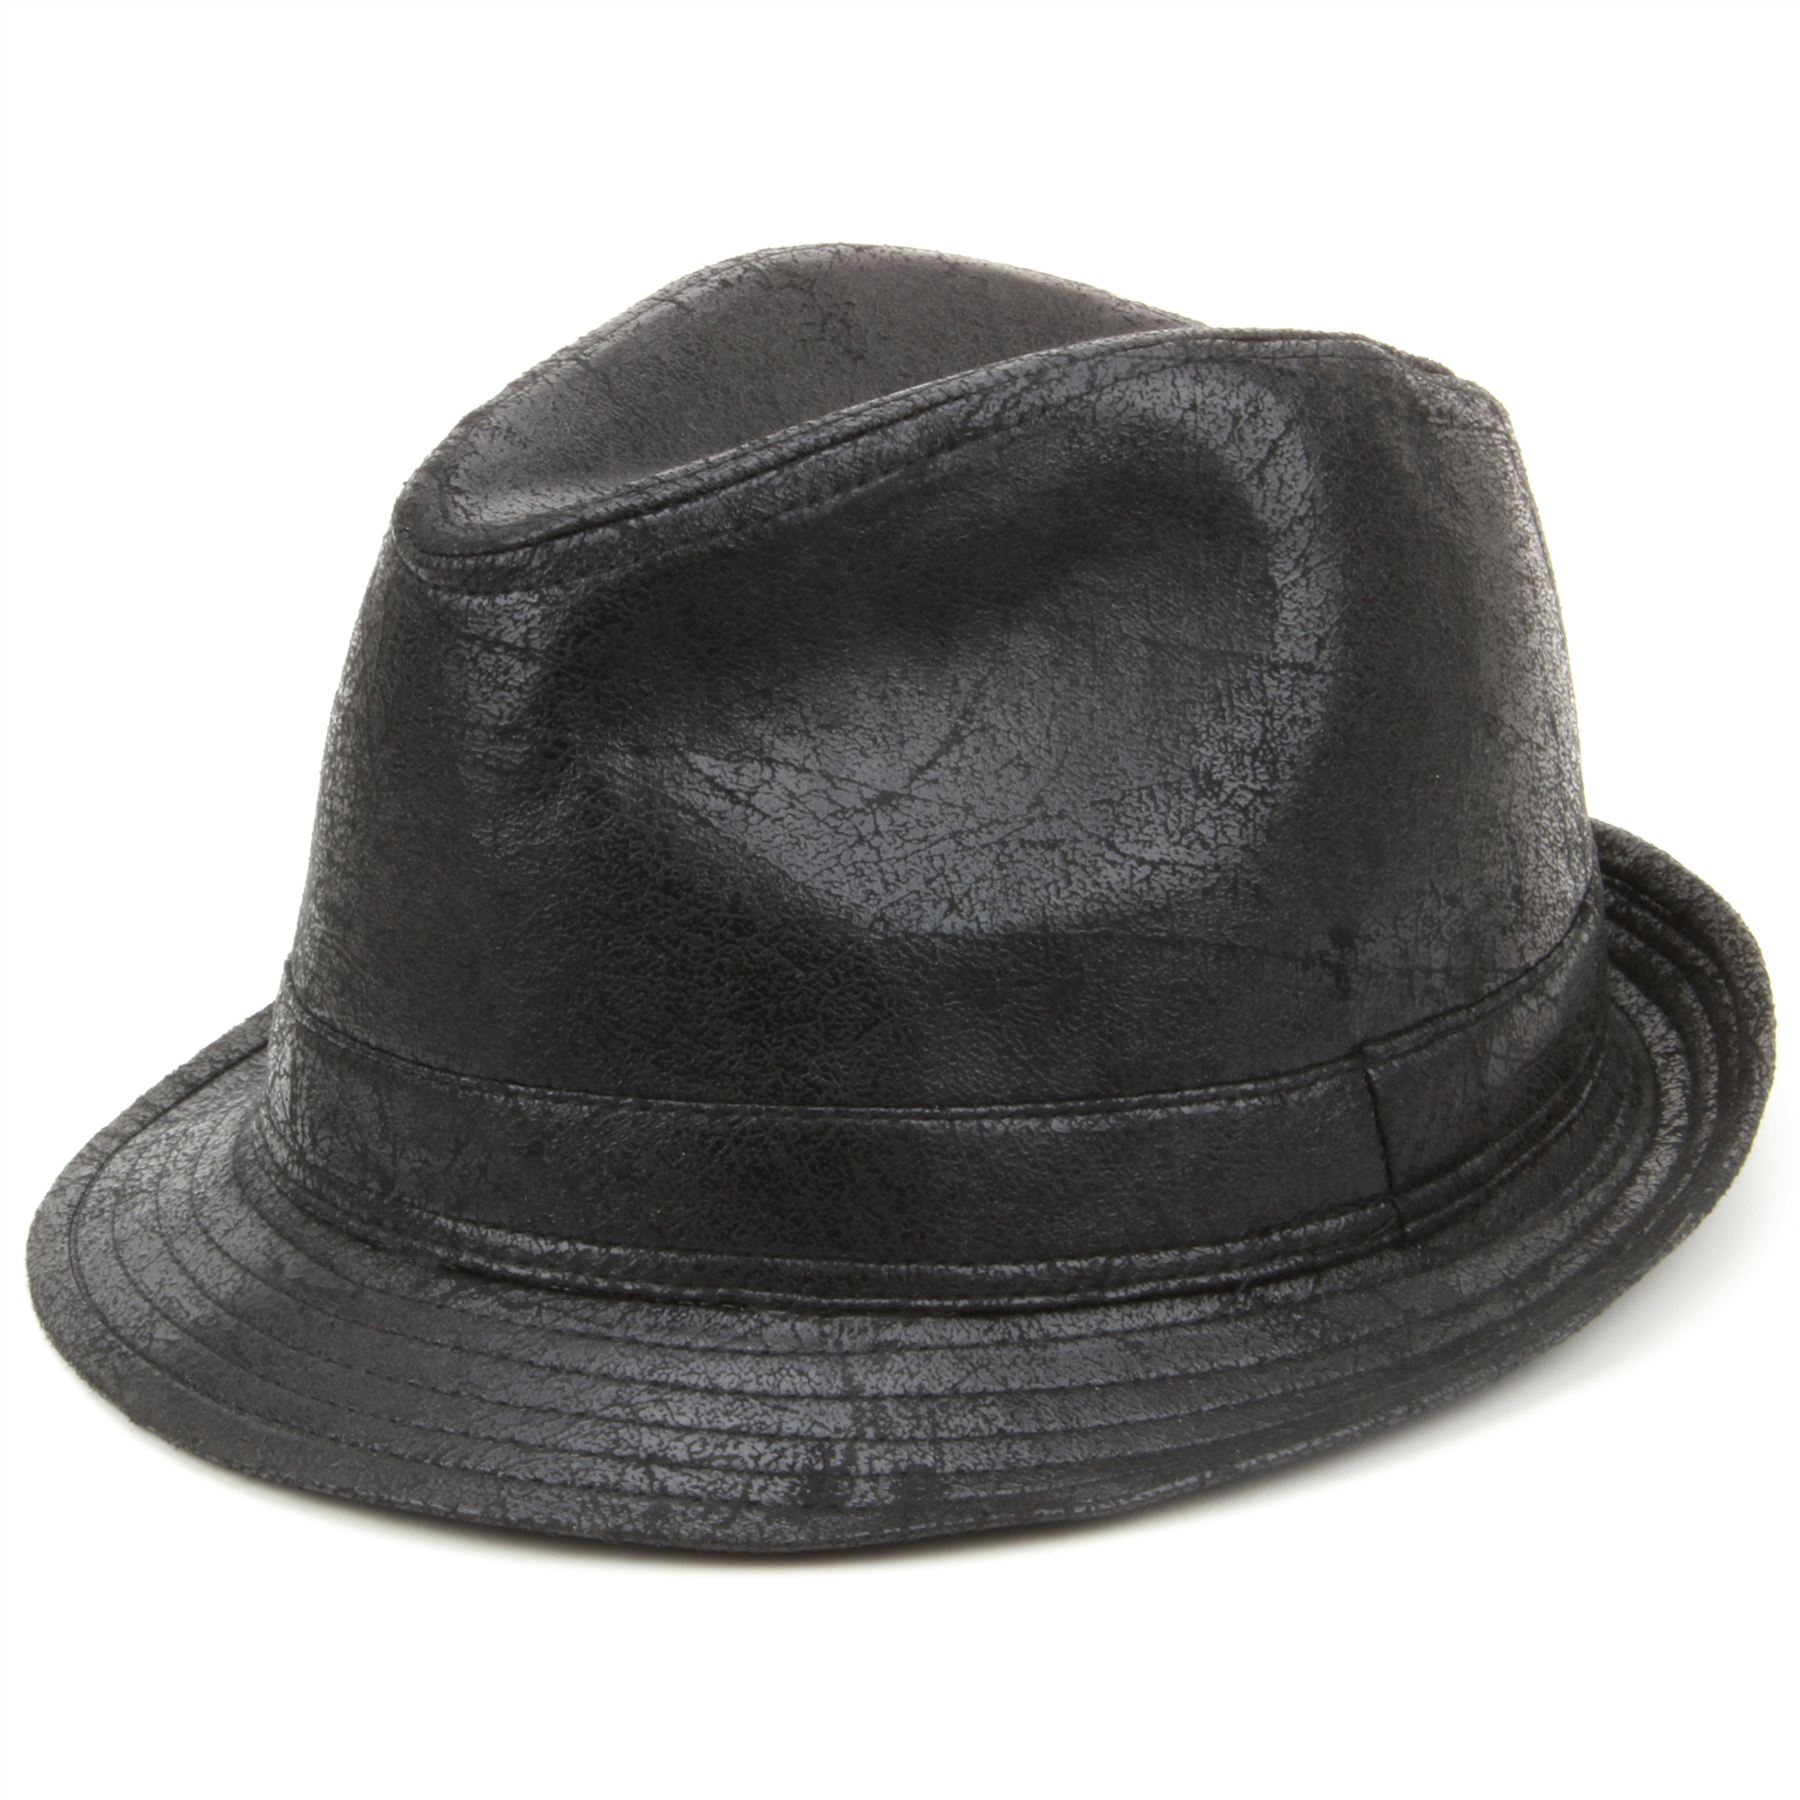 5eae8b5f7971e Details about Trilby Hat BLACK Hawkins Distressed Leather Effect Faux Retro  Fedora Vintage